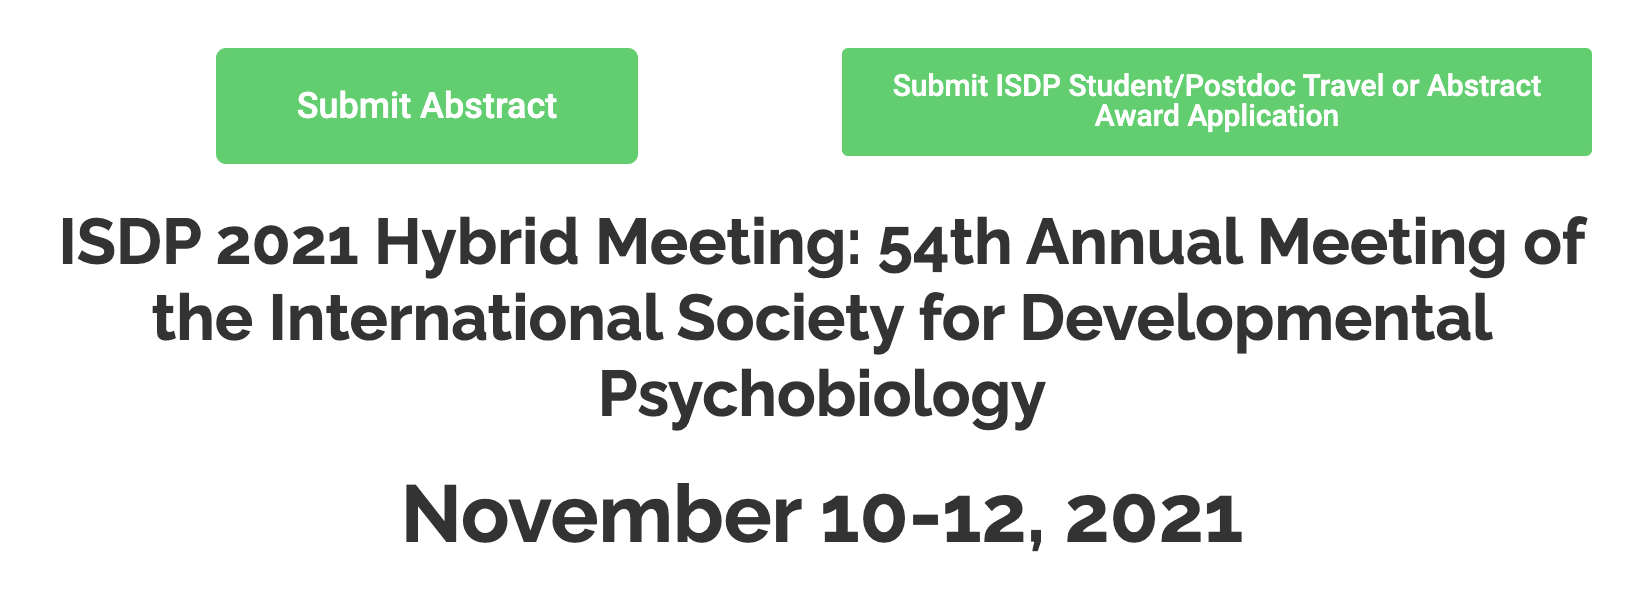 Submit Abstracts for ISDP 2021 Hybrid Meeting by June 15th